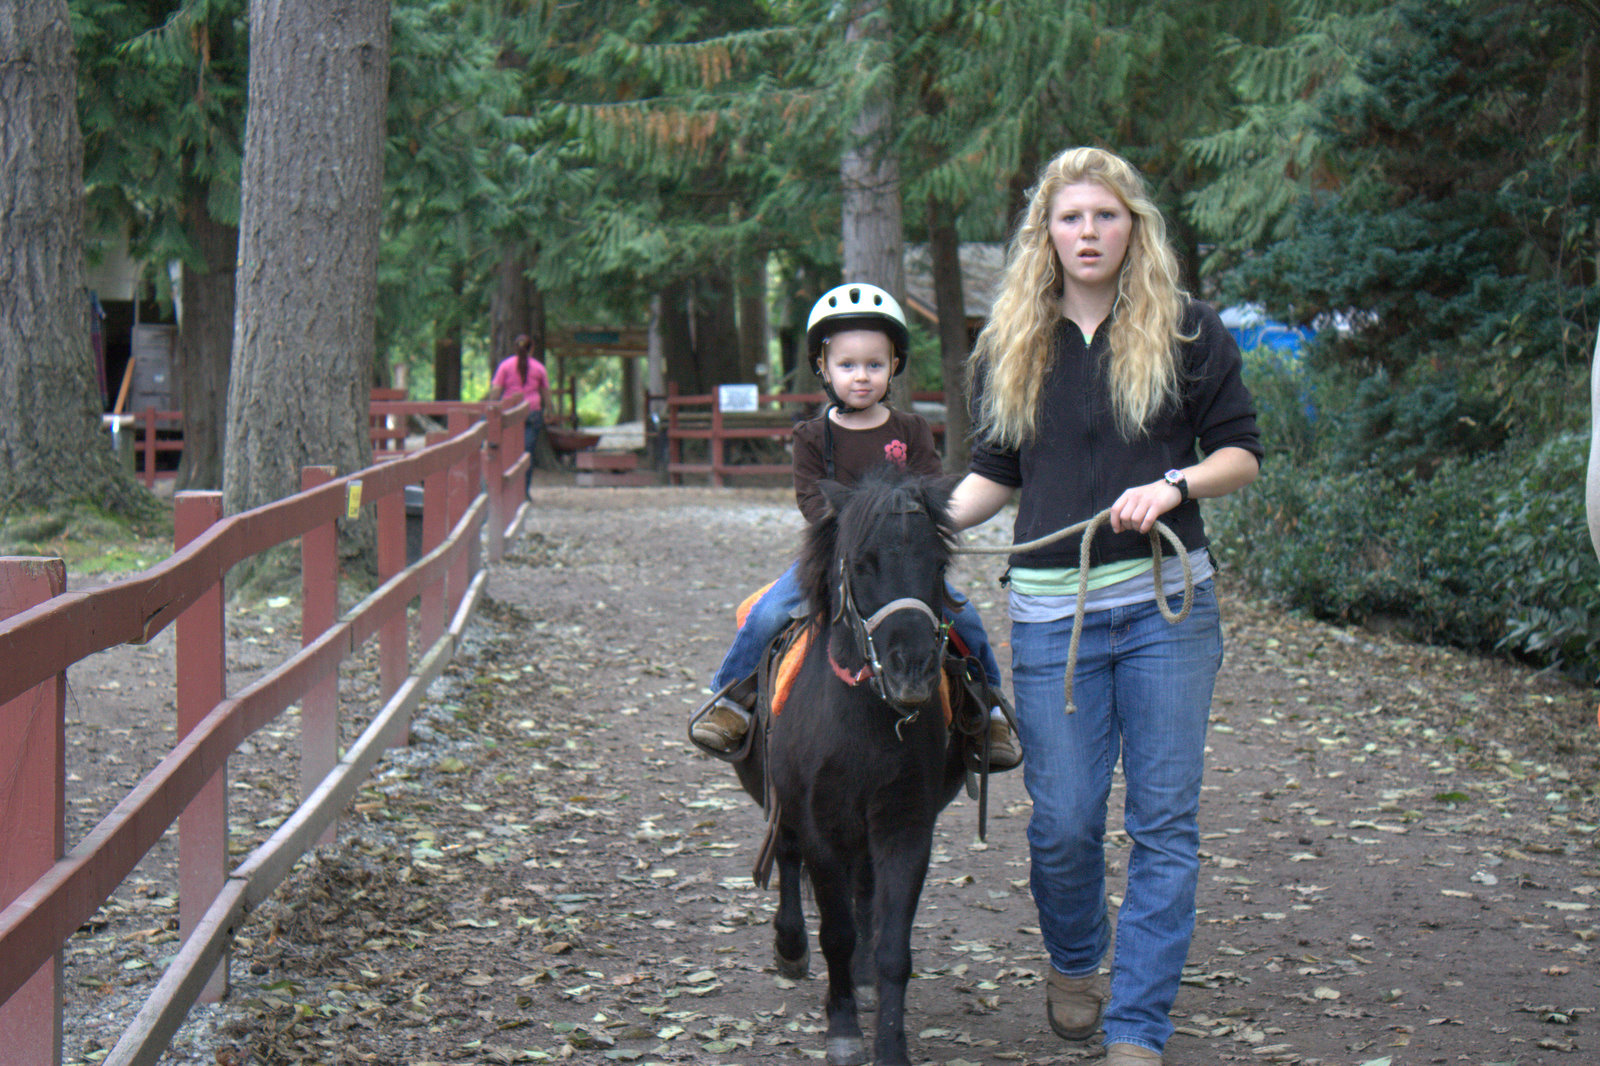 hibler house lang s pony farm she got her boots in the stirrups and held onto the reins and was excited to go after she met popeye up close that s the pony s